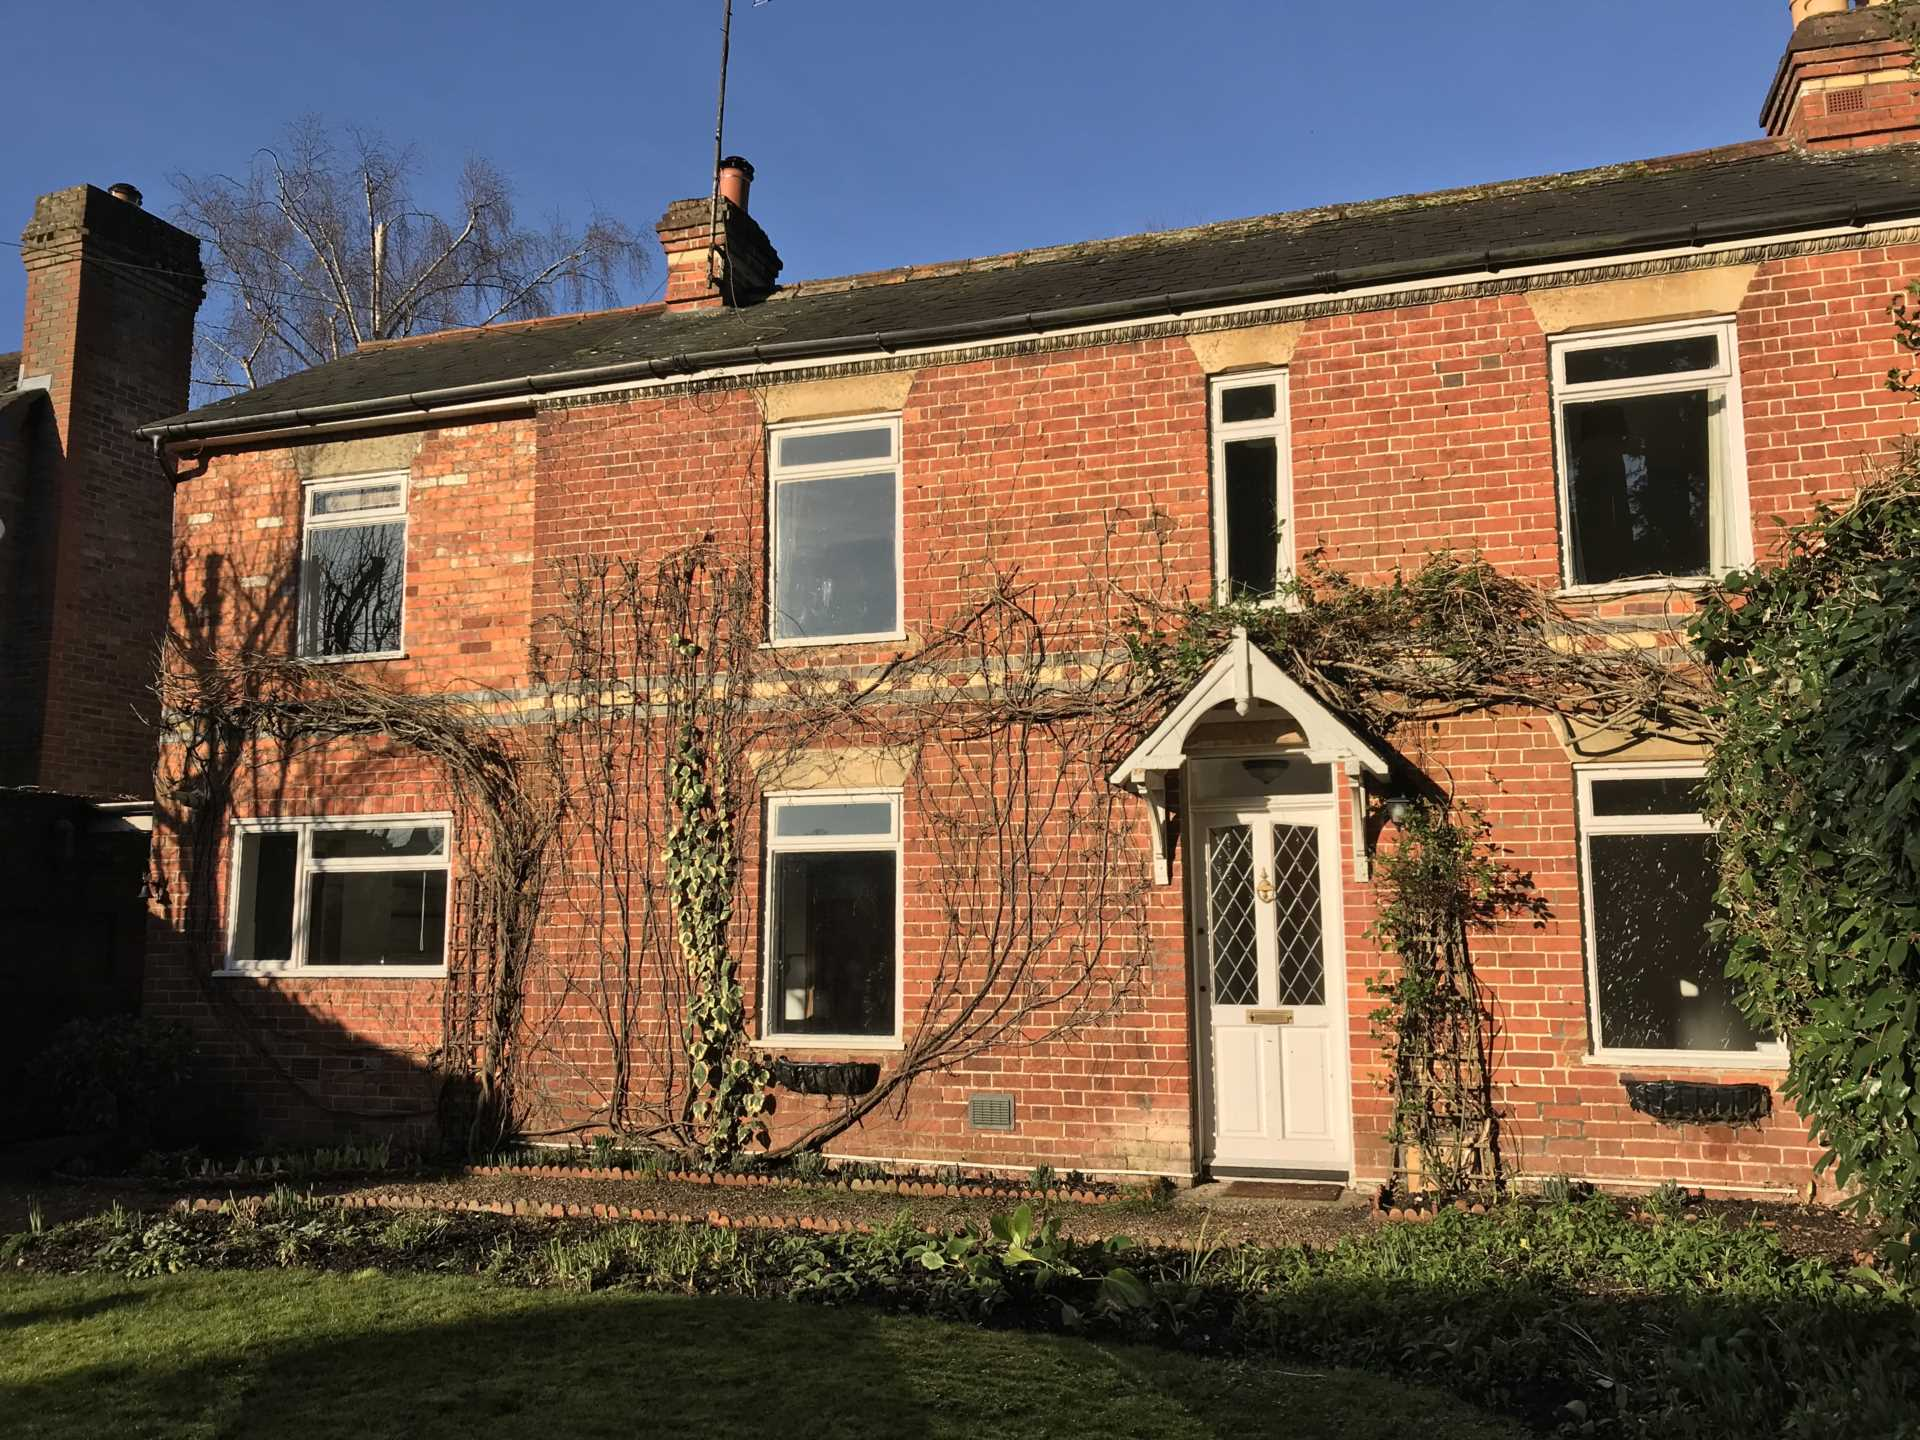 Dudley Singleton and Daughter - 2 Bedroom Semi-Detached, Whitchurch on Thames